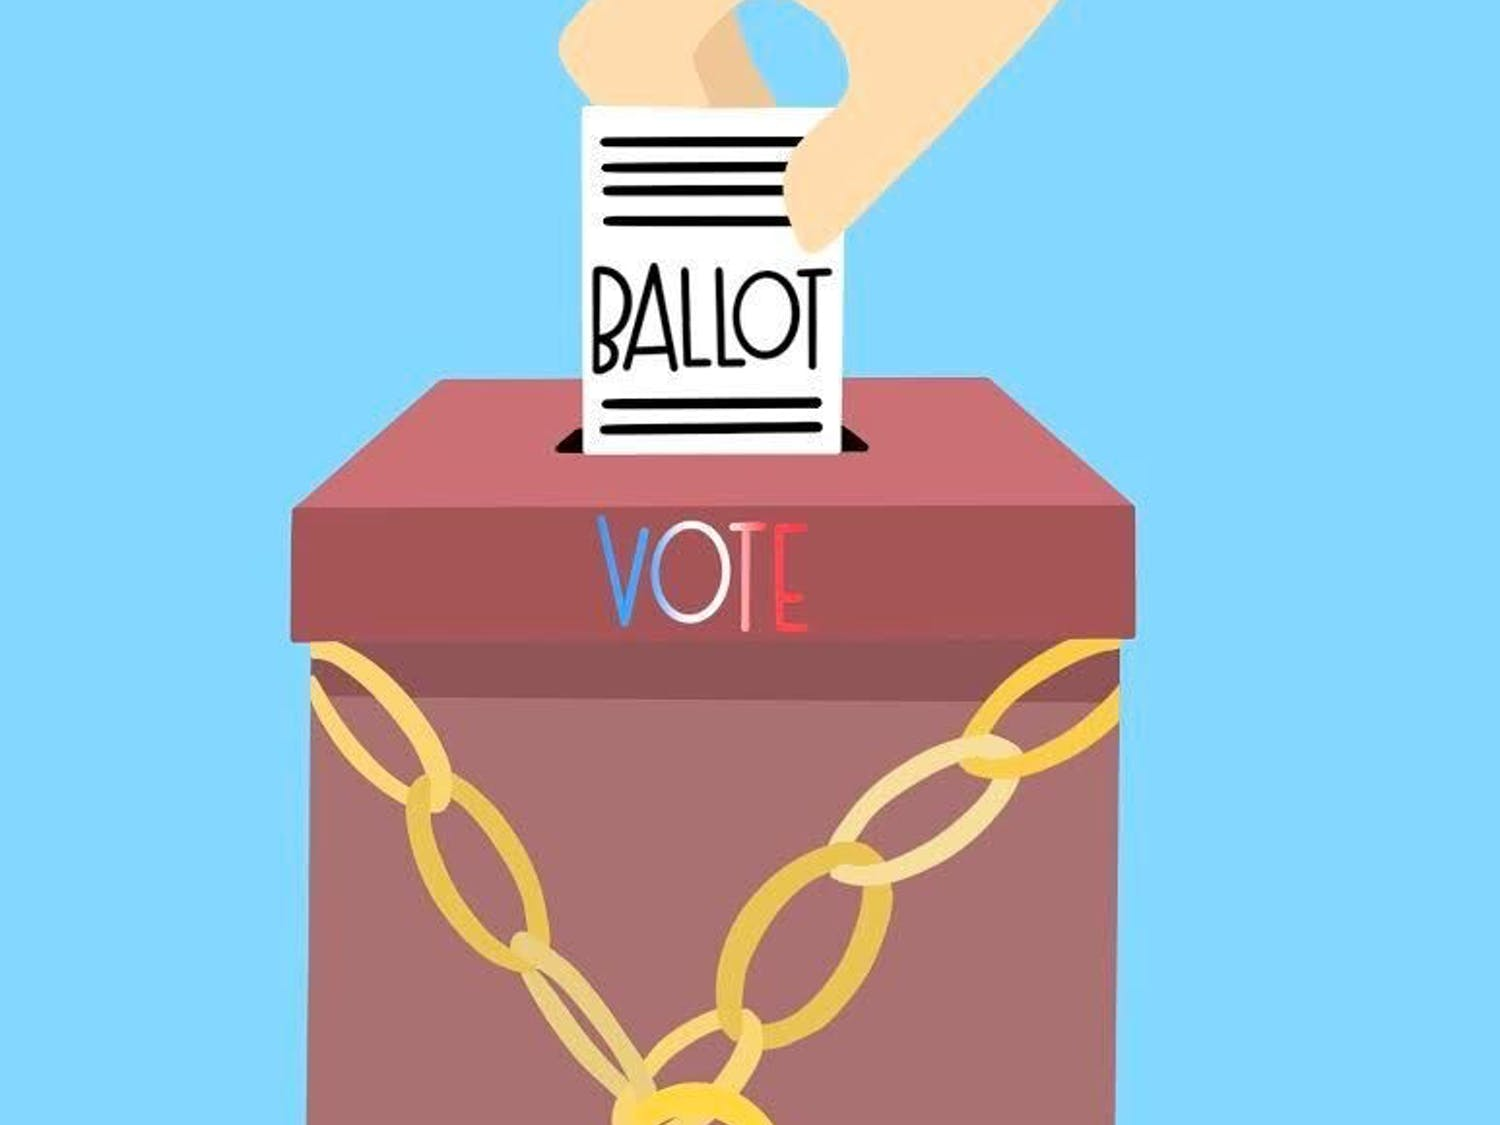 The city will implement a variety of measures to protect the integrity of next week's general election as concerns surrounding absentee ballots and voter fraud have reached the center of the political debate at the state and national level.